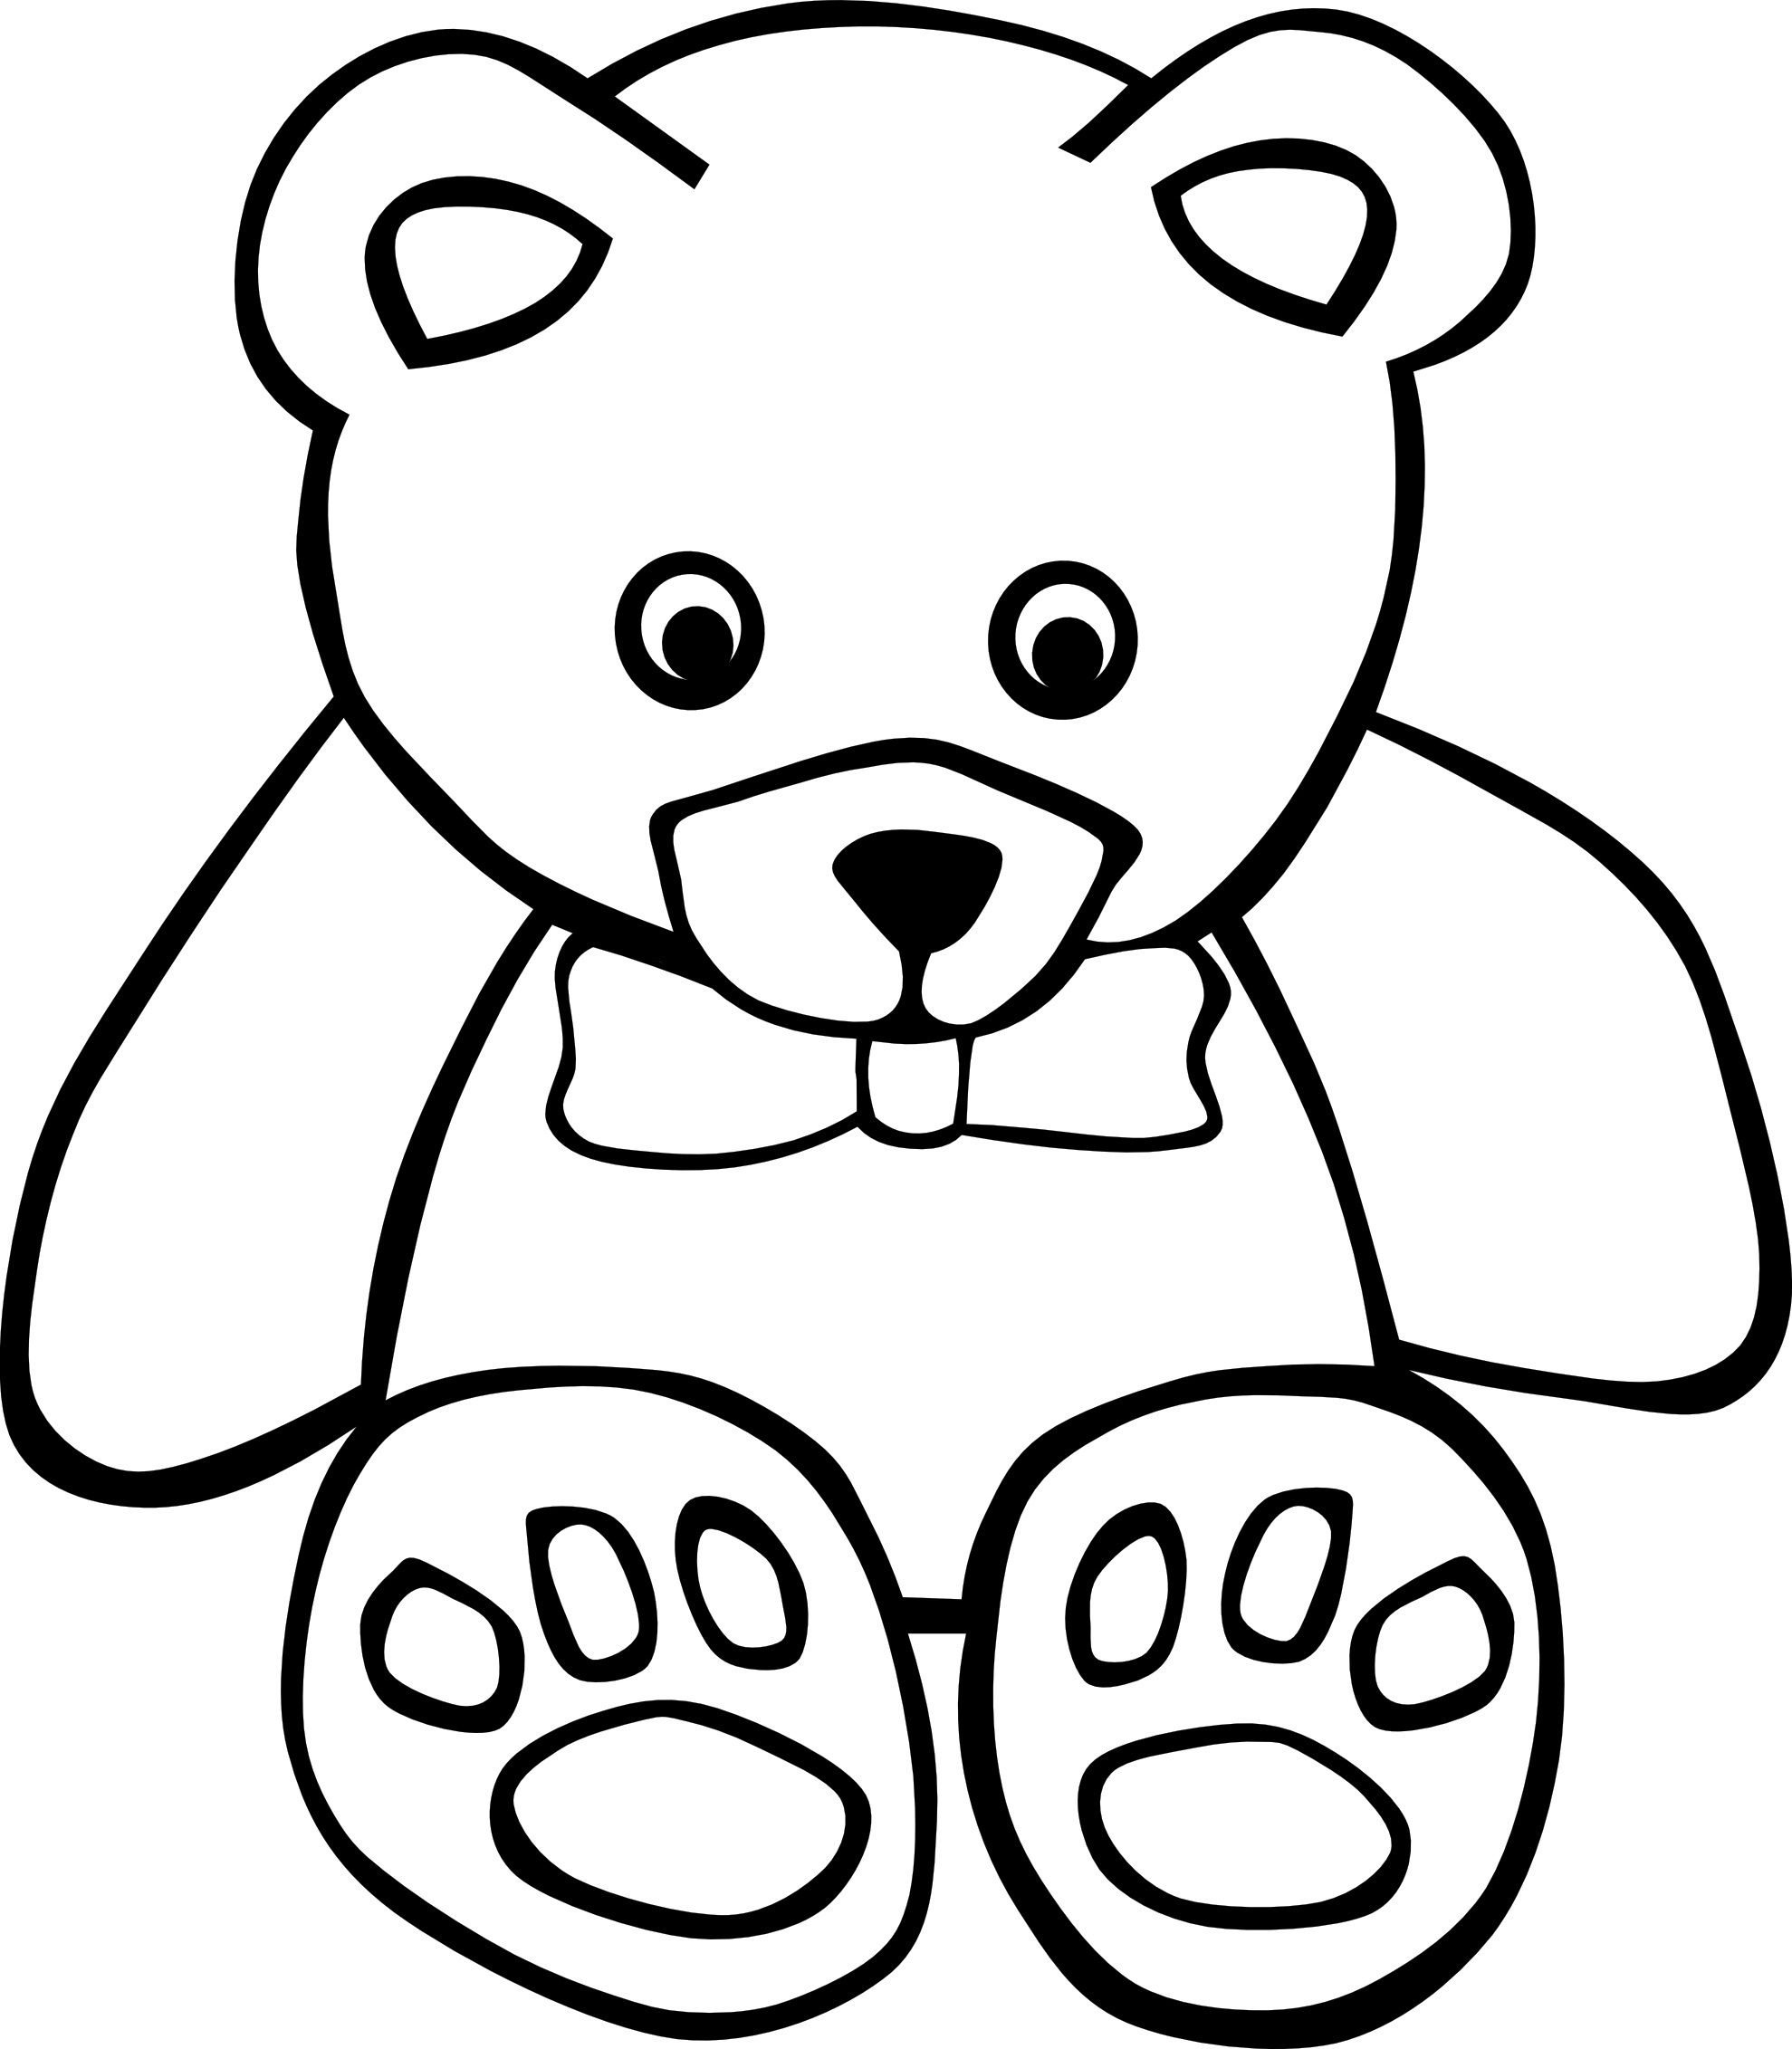 Languages Free Printable Teddy Bear Coloring Pages For